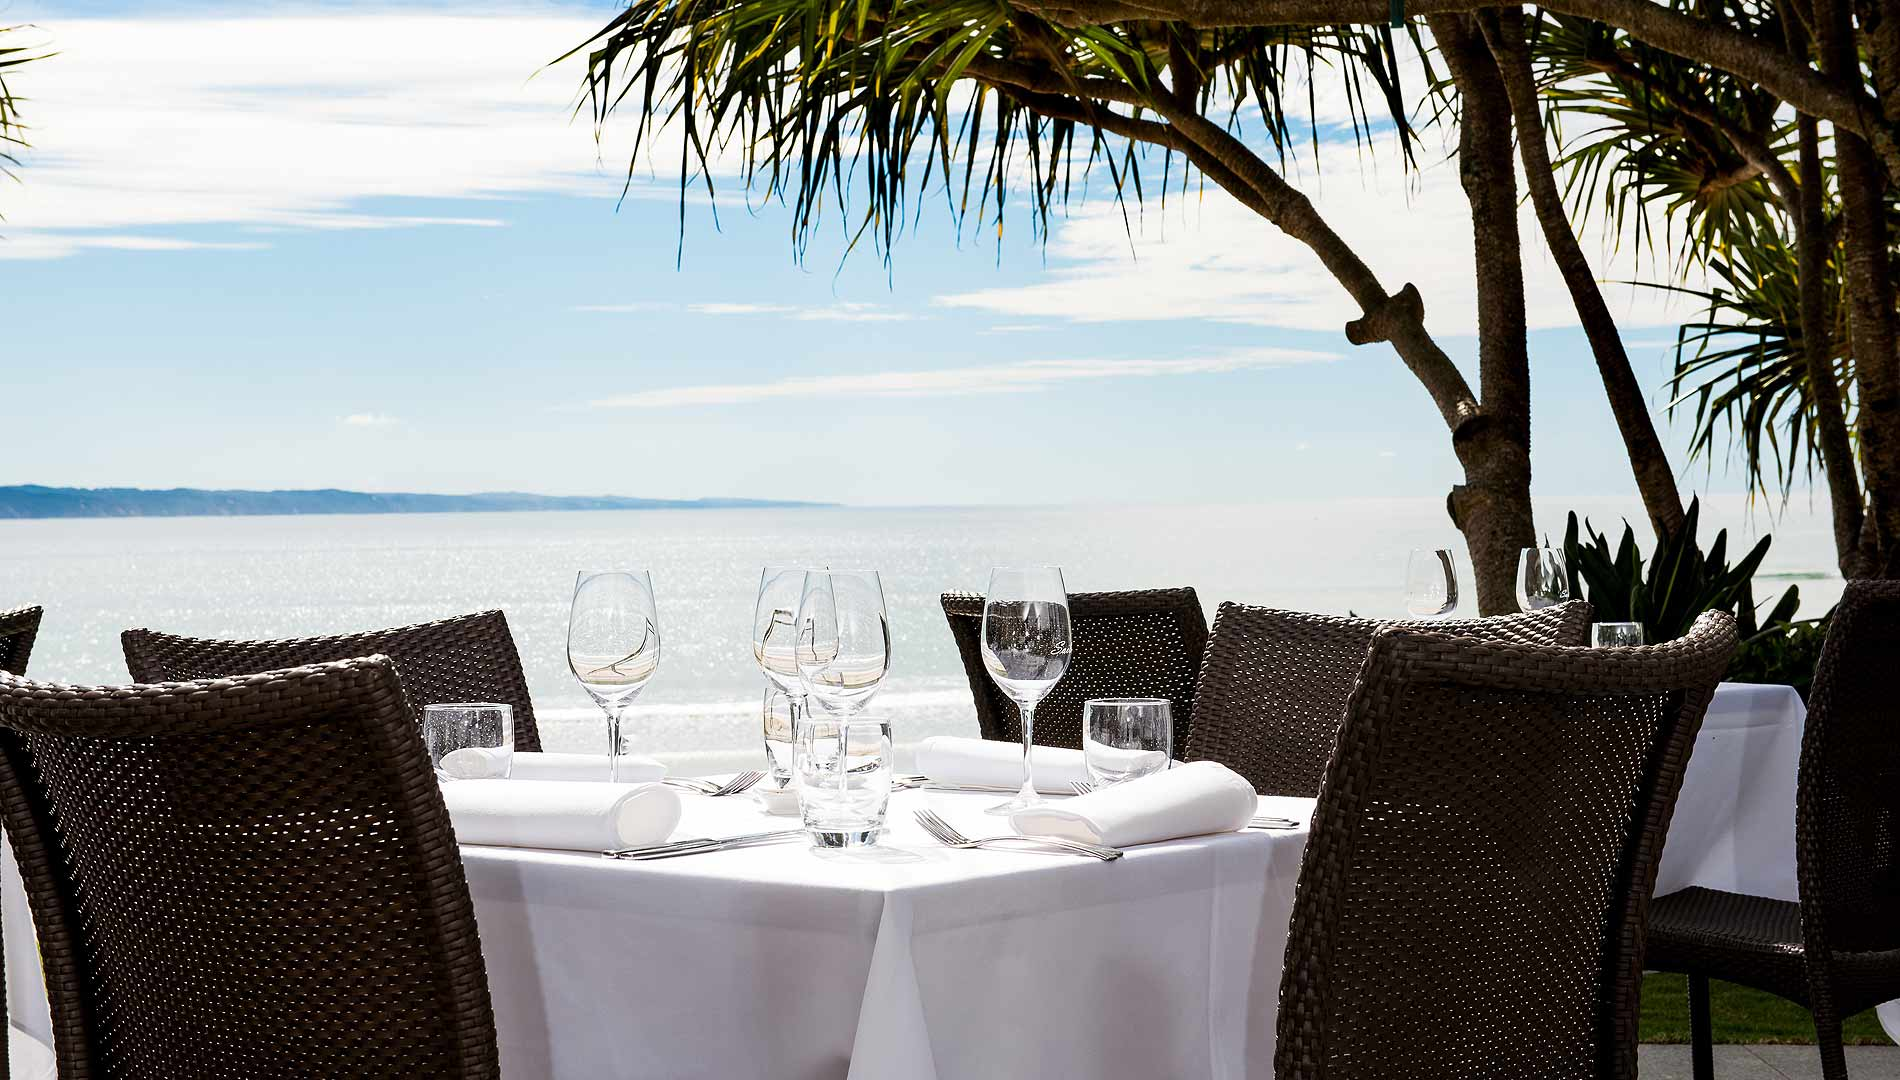 Table Bookings Amp Reservations Sails Restaurant Noosa Beach